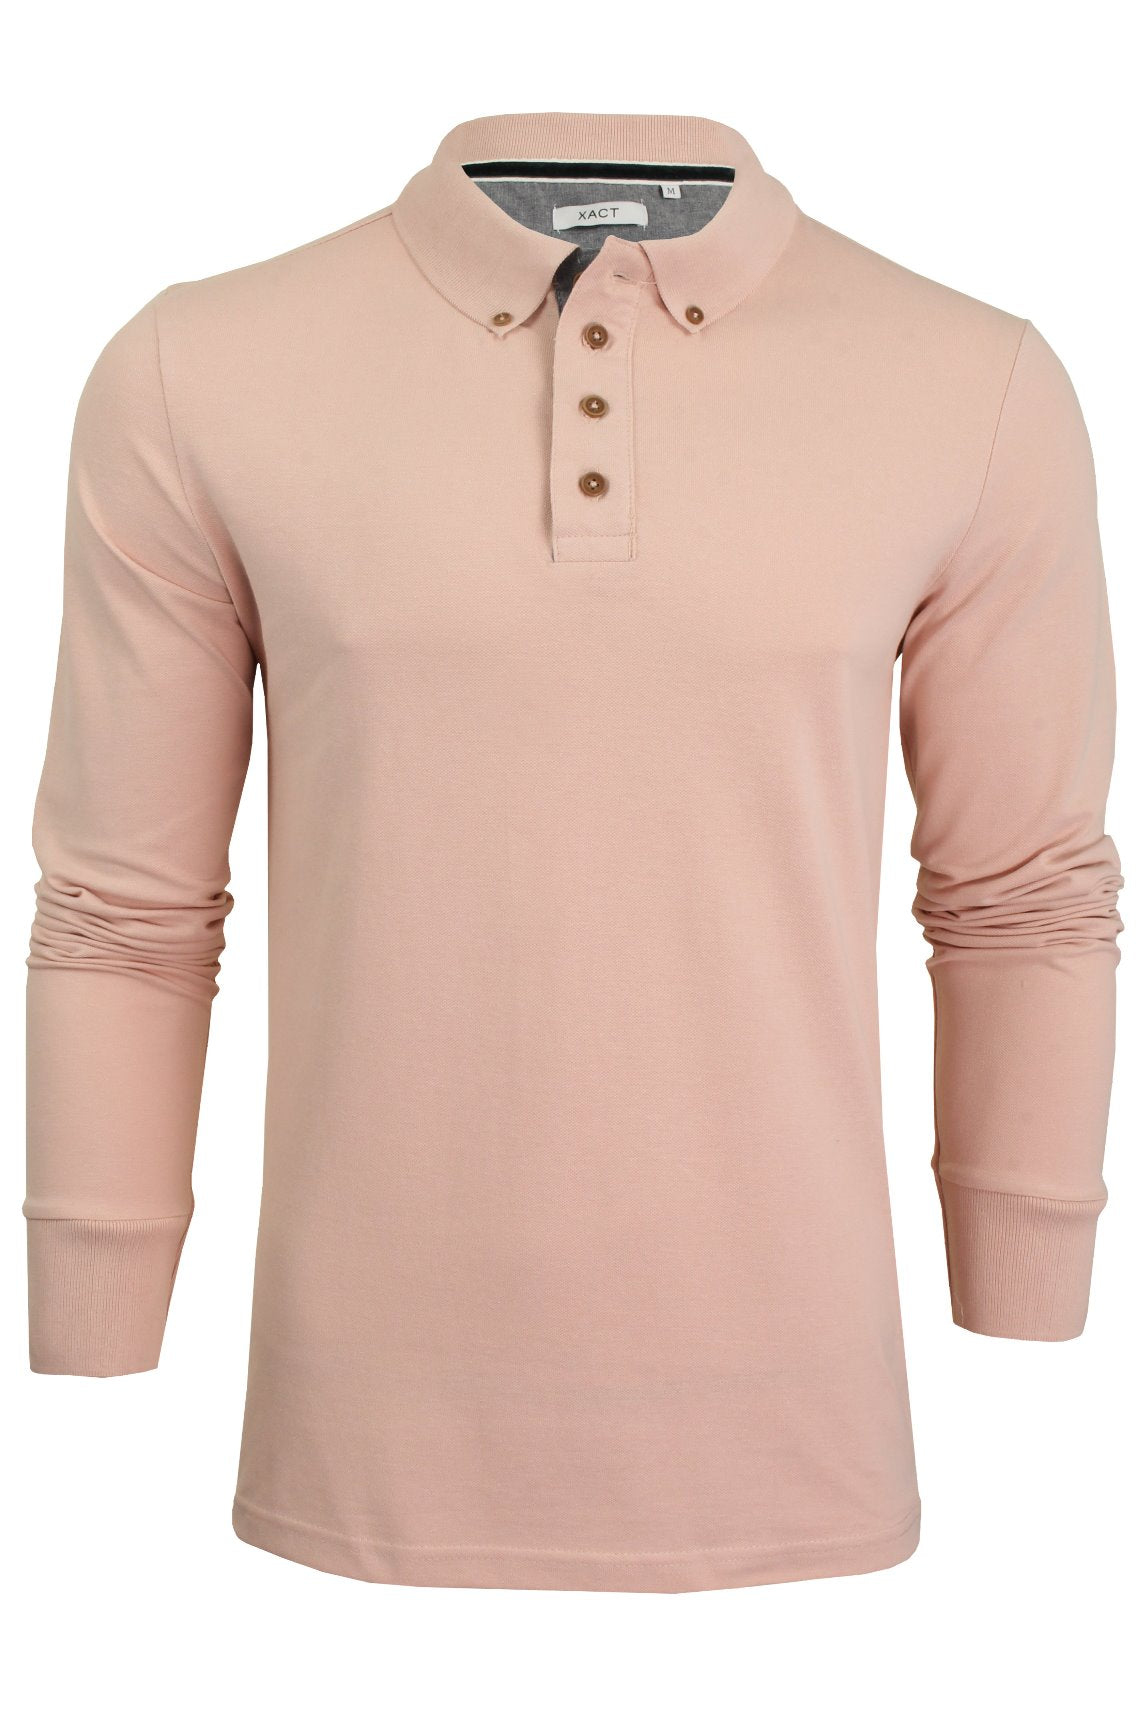 Mens Polo T-Shirt by Xact Pique Long Sleeved_01_XP1003_Summer Pink